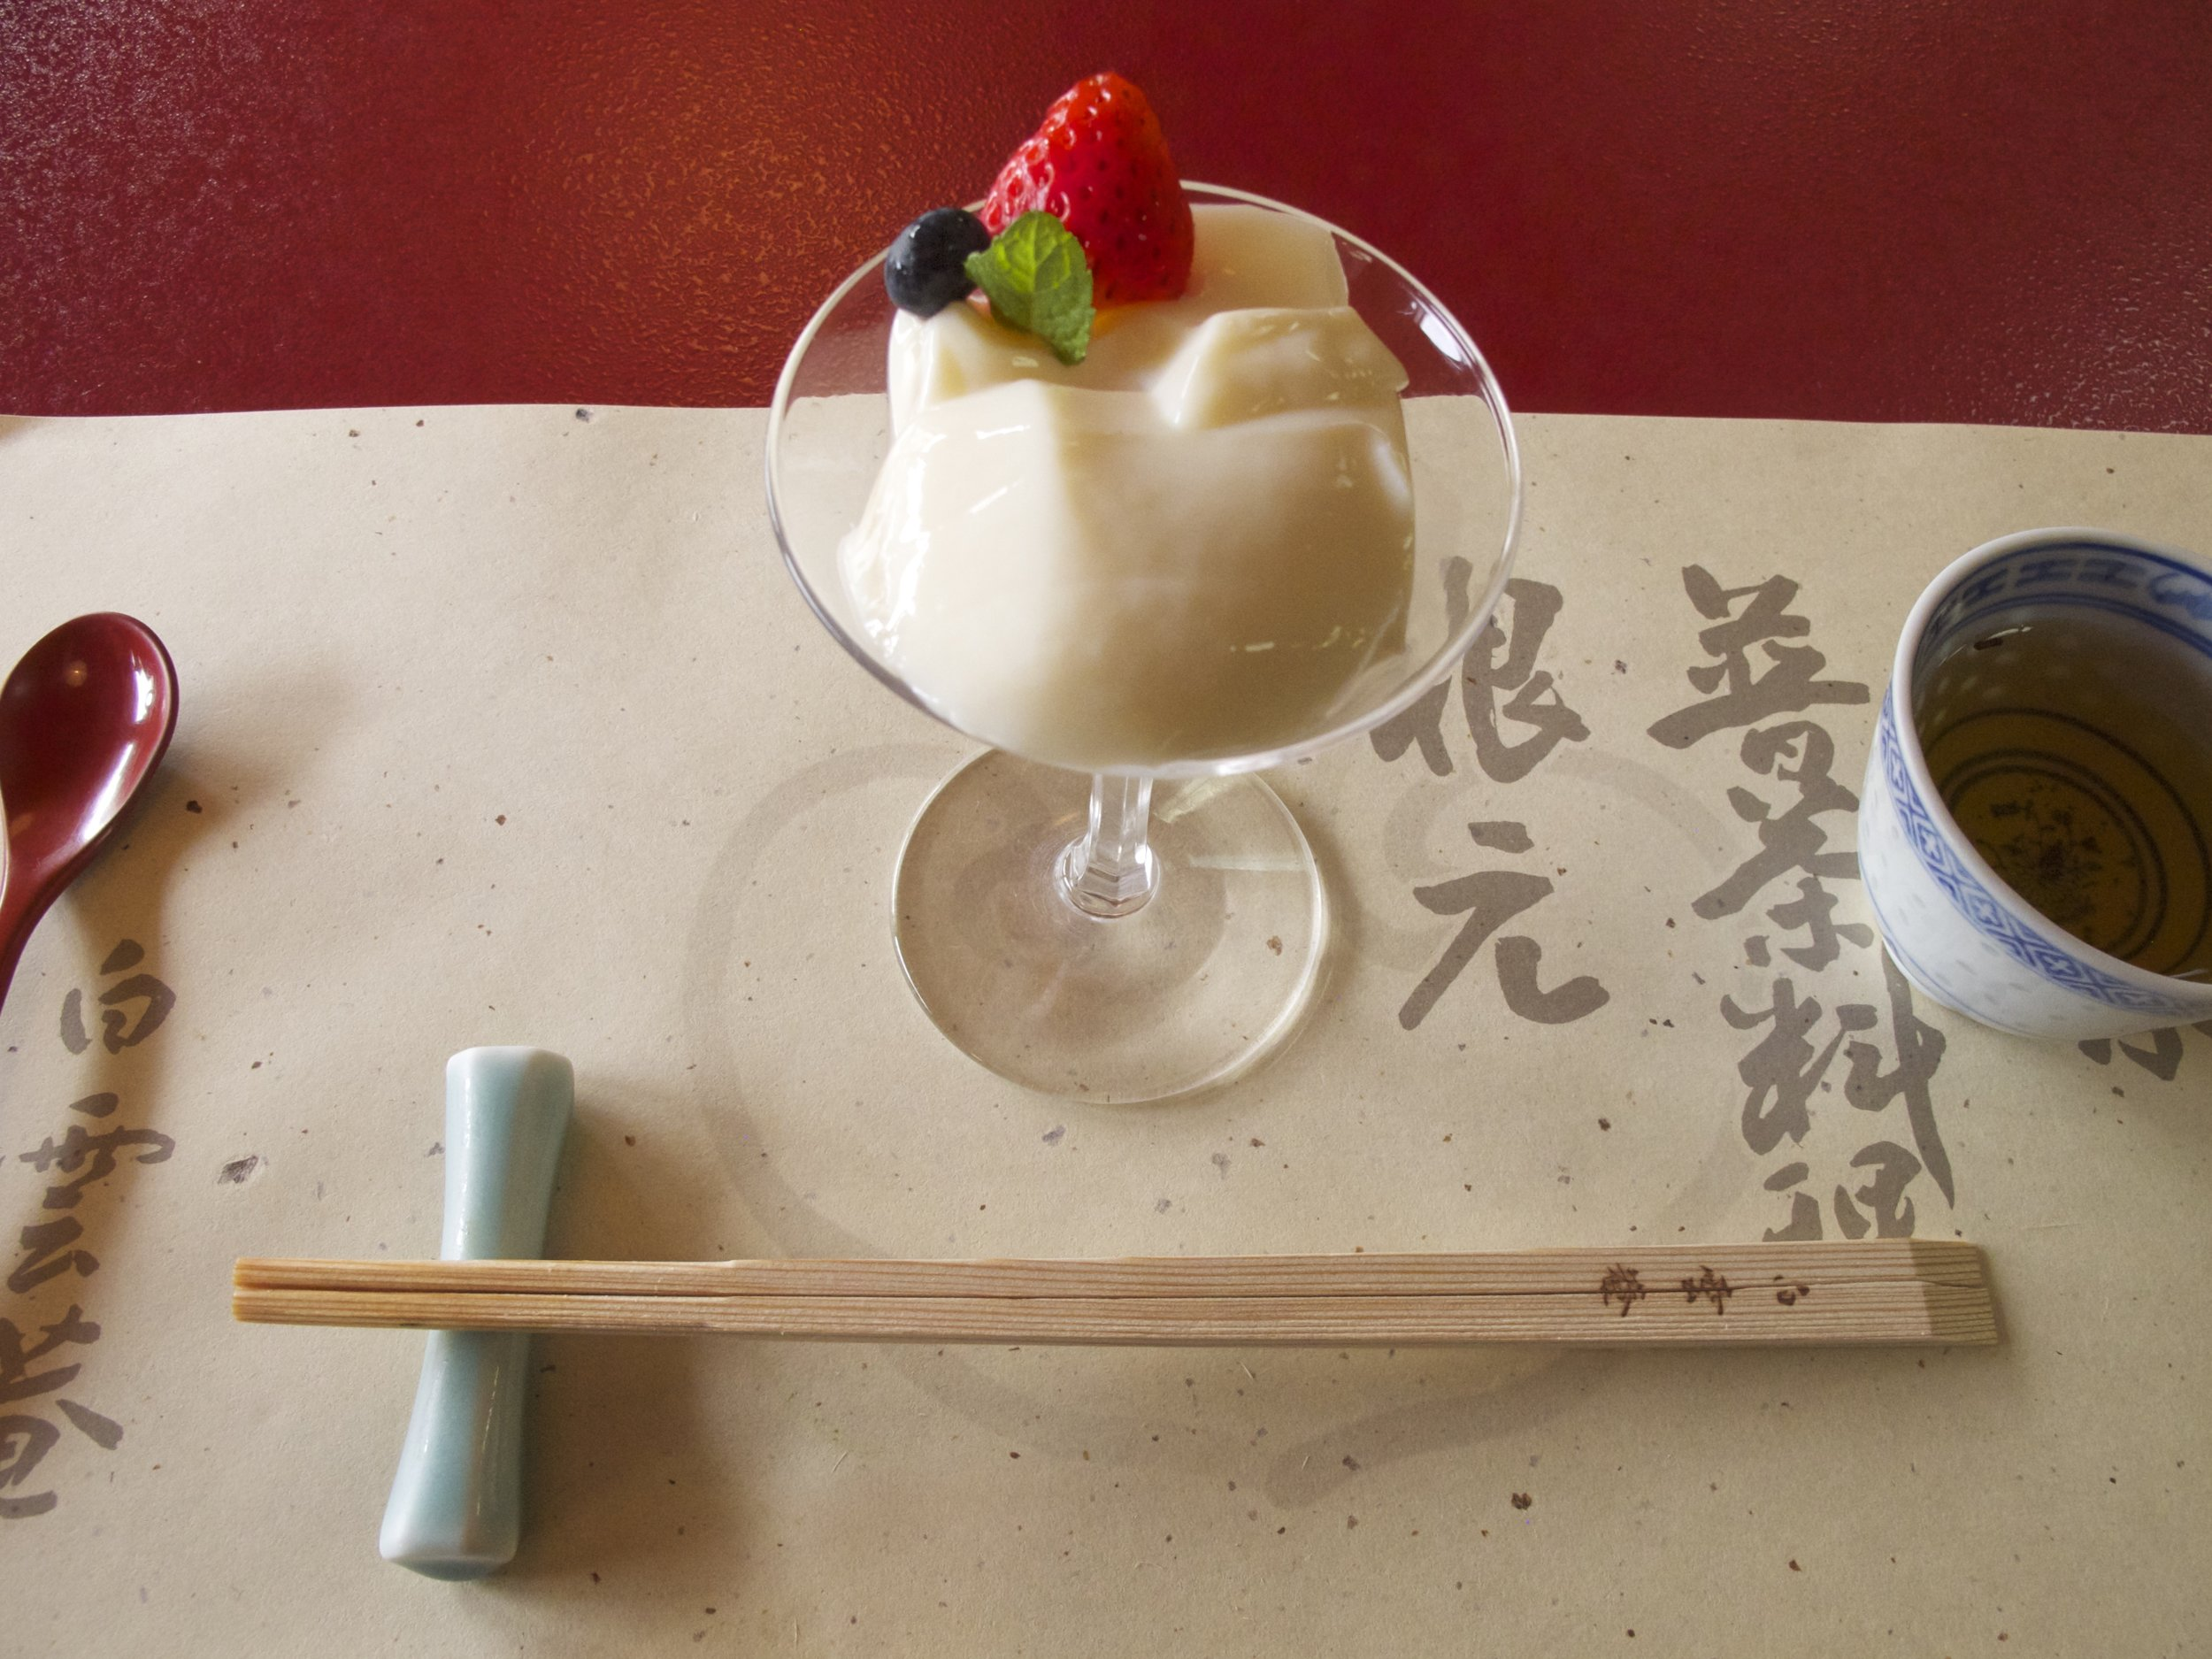 Dessert is a traditional Chinese pudding made from apricot kernel milk, sugar, and gelatin, called  annin-dofu  in Japanese.